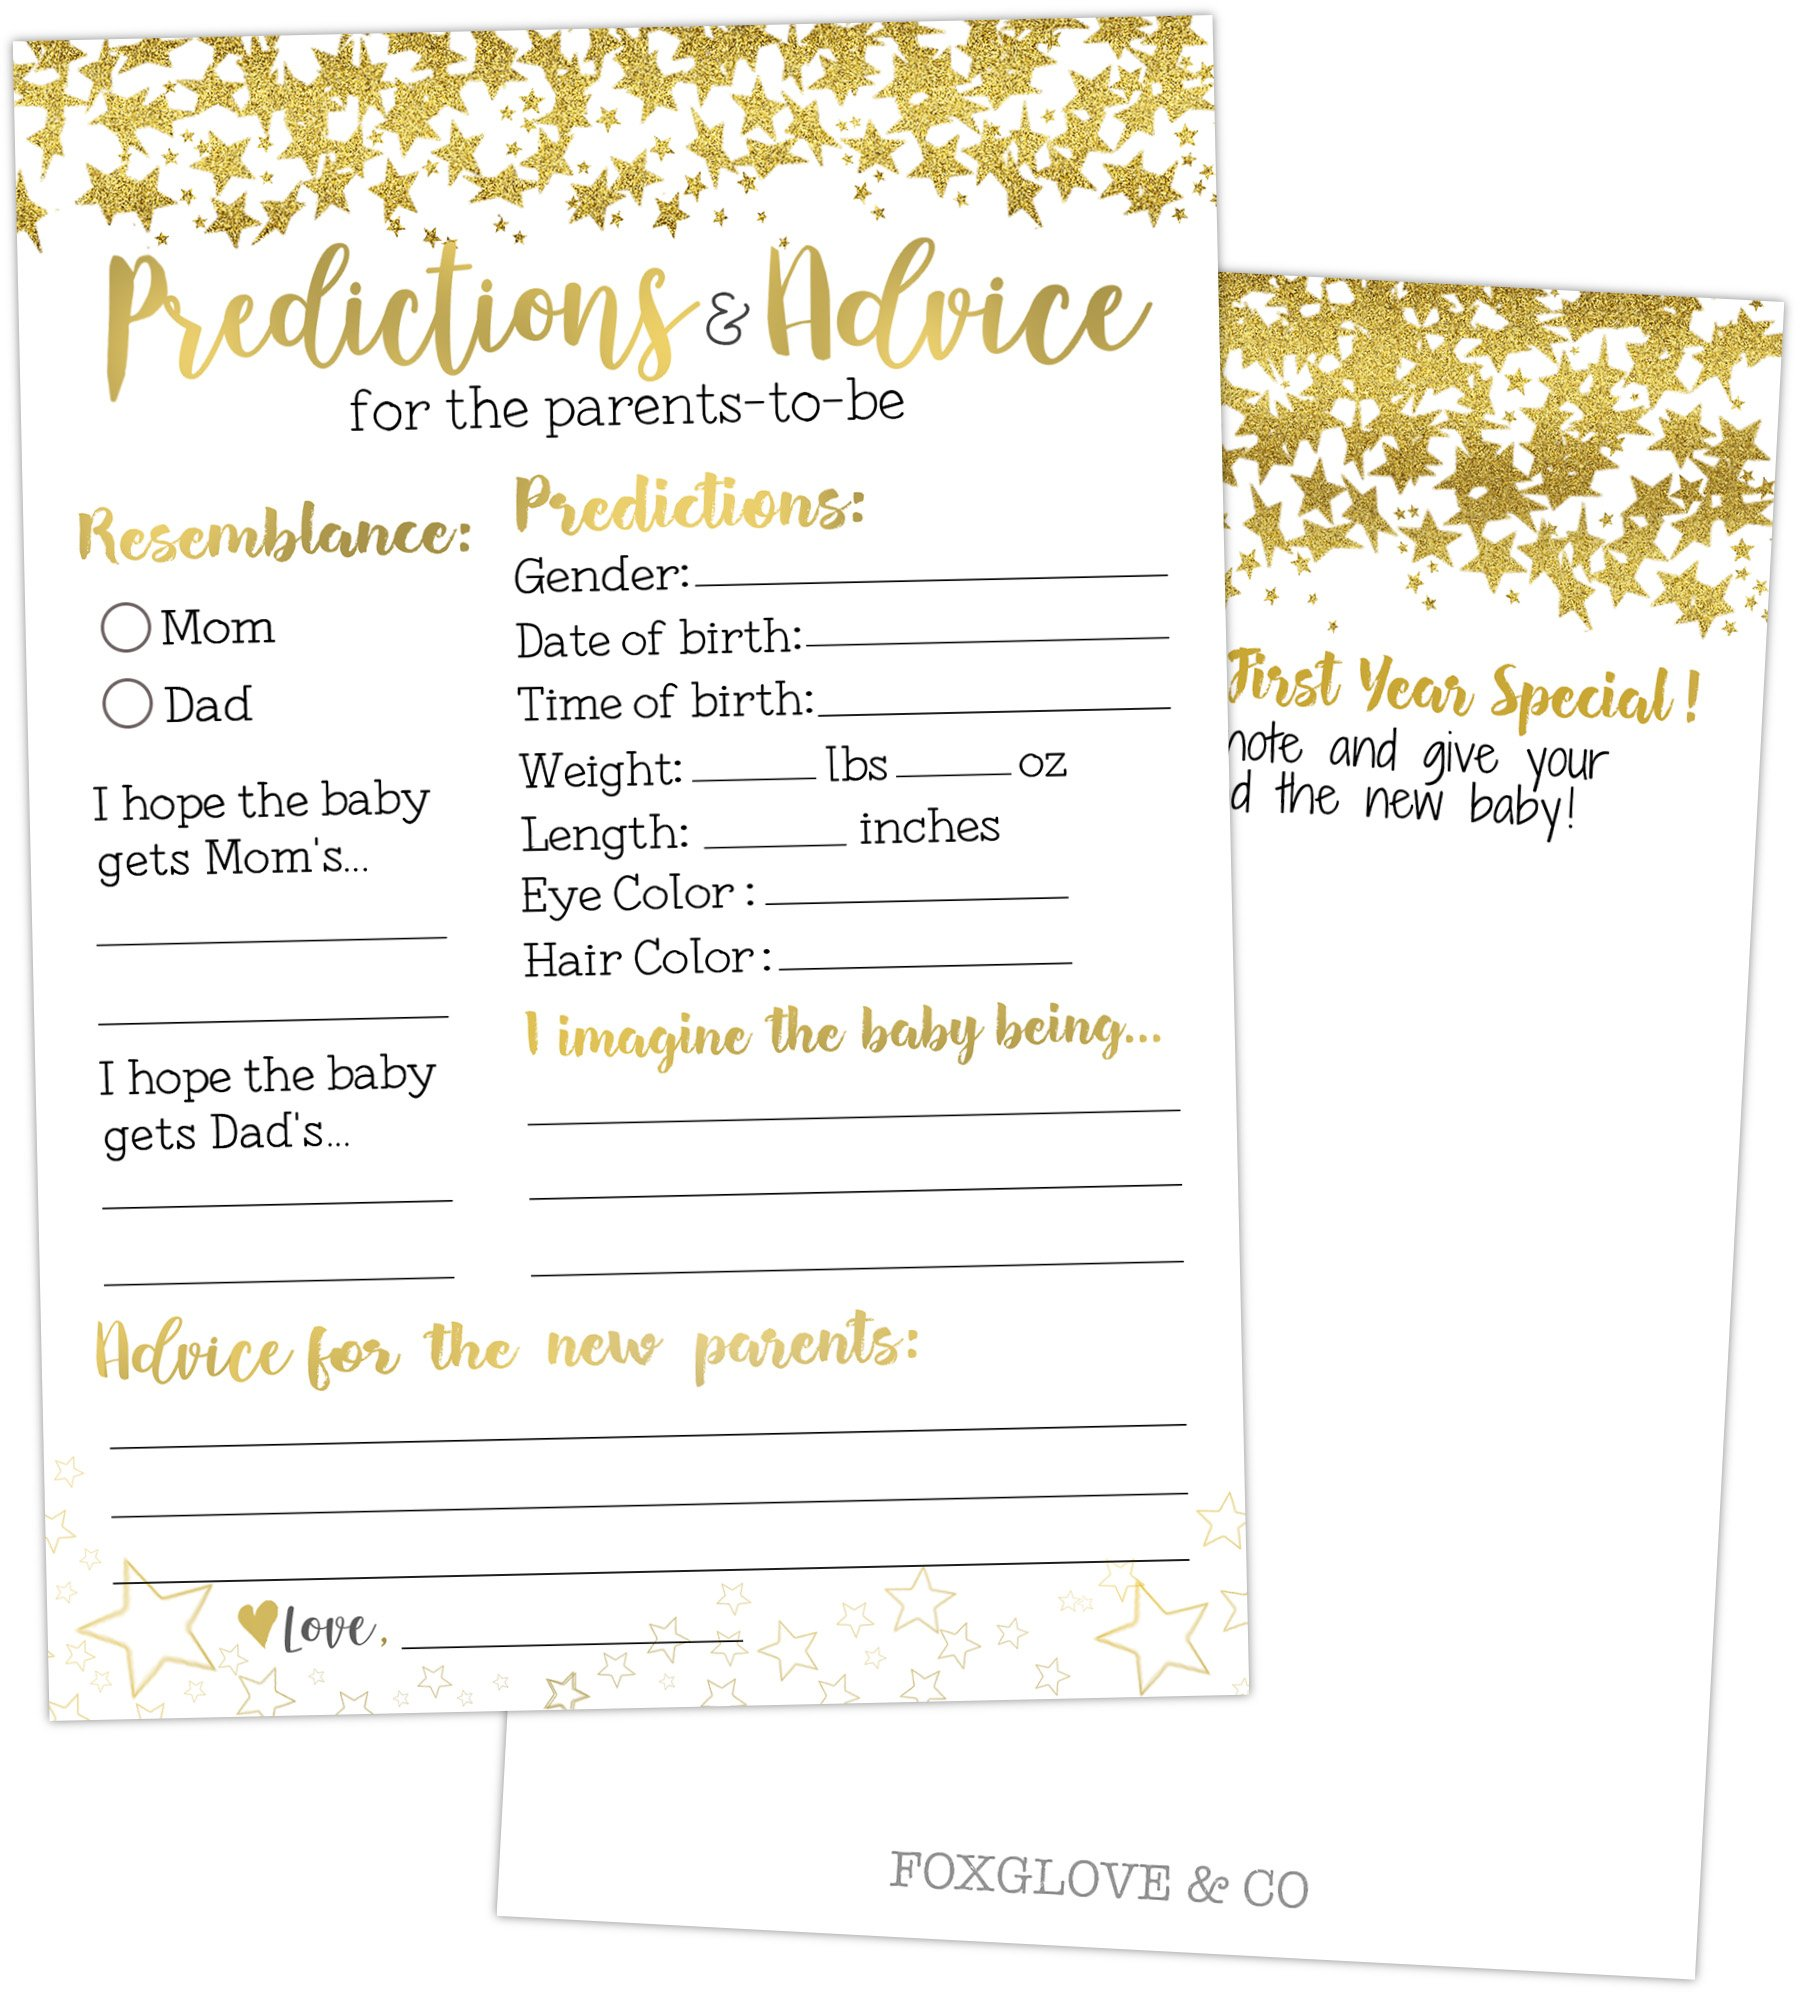 50 Gold Baby Prediction and Advice Cards - Baby Shower Games for Gender Neutral, Girls, Boys or Party Favors to Play - Best Wishes for Baby, New Mom & Dad, Mommy & Daddy, Parents to Be Advice Cards